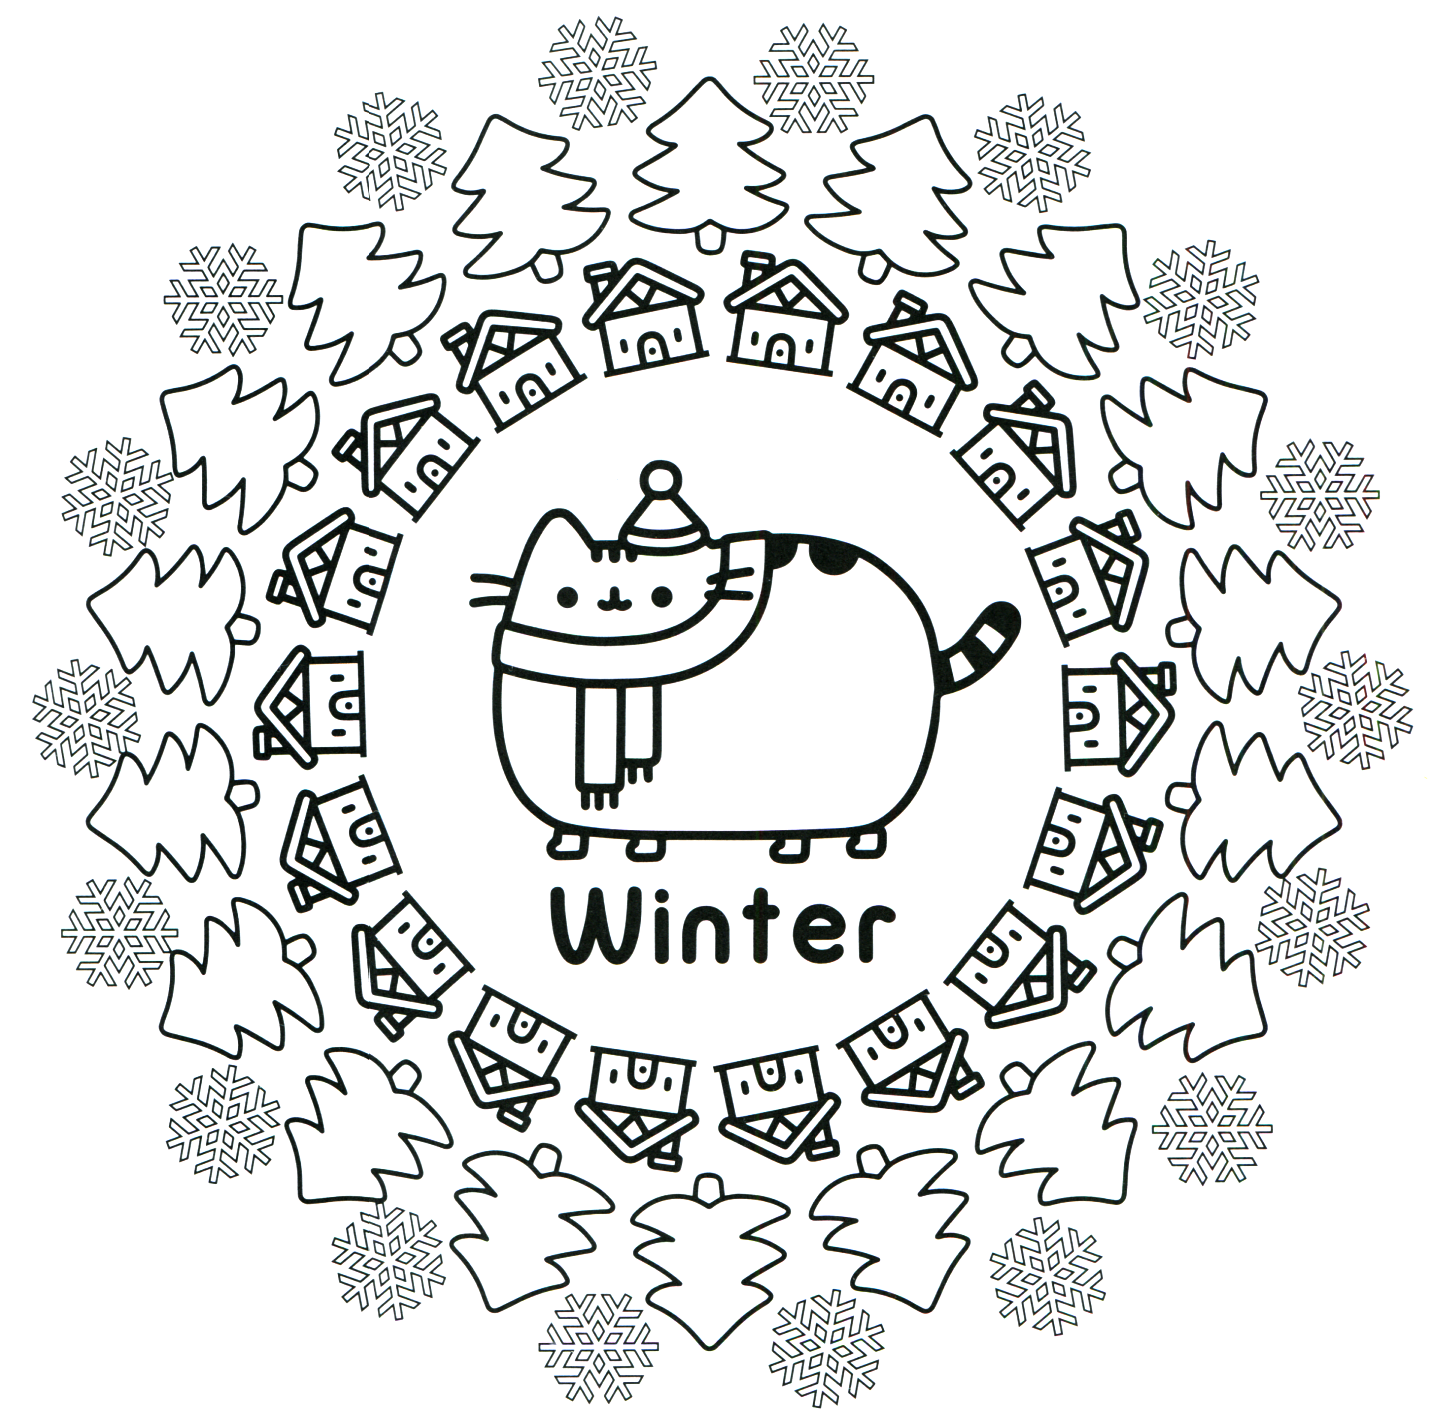 Pusheen Coloring Book Pusheen Pusheen The Cat Pusheen Coloring Pages Cat Coloring Page Christmas Coloring Pages